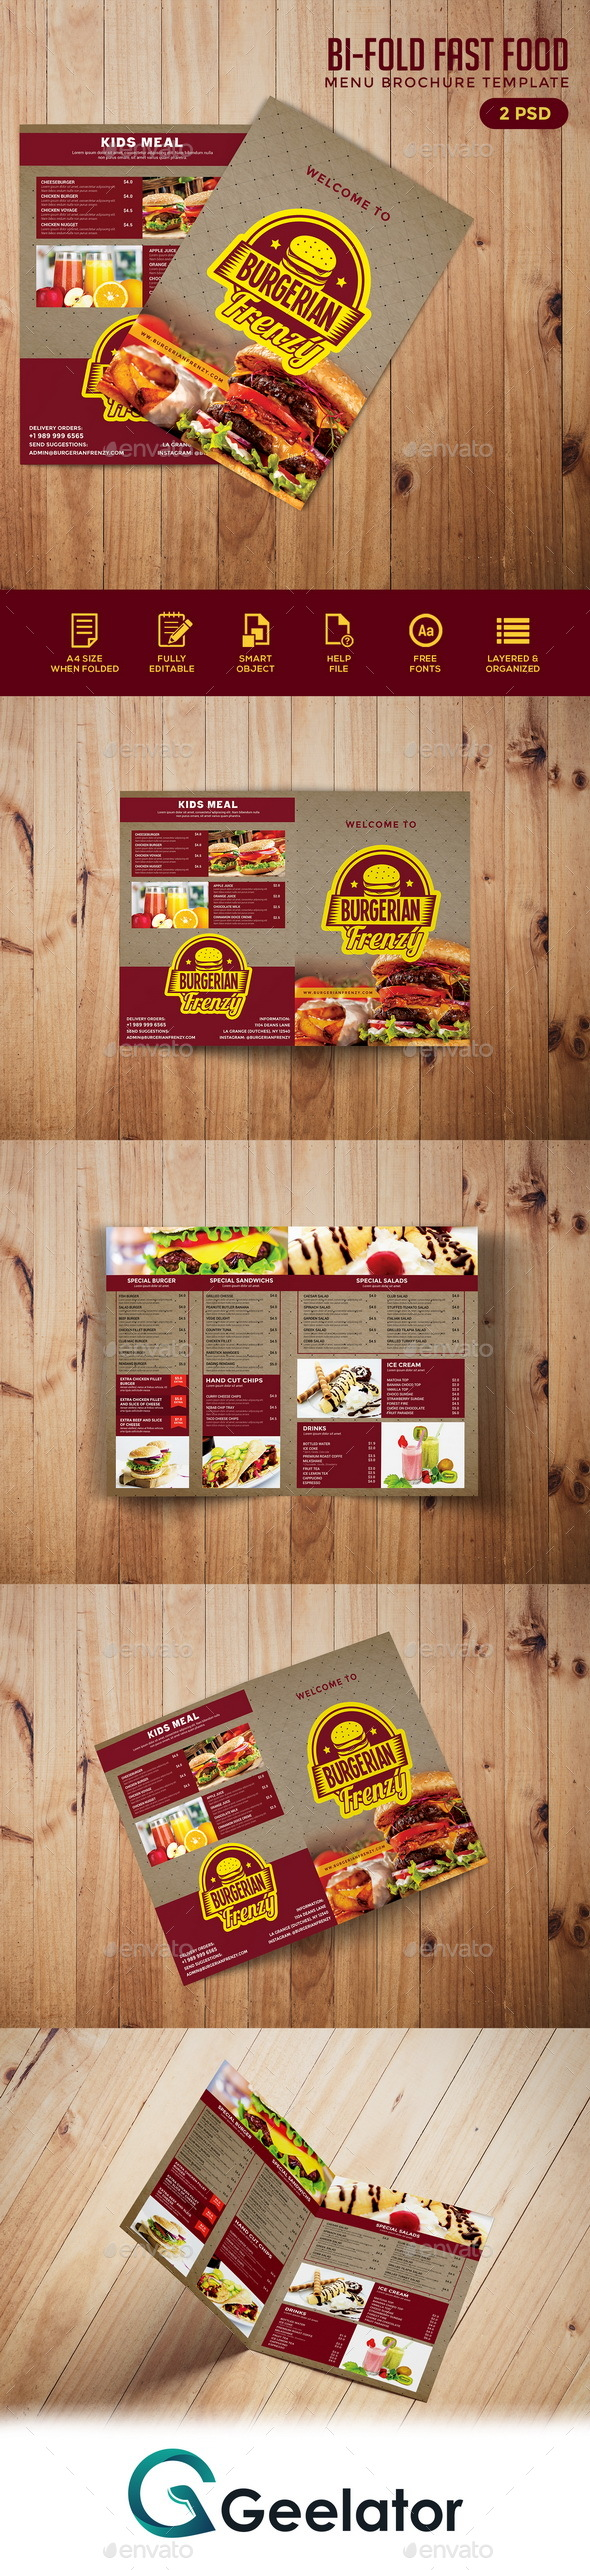 Bifold Fast Food Menu Brochure Template - Food Menus Print Templates